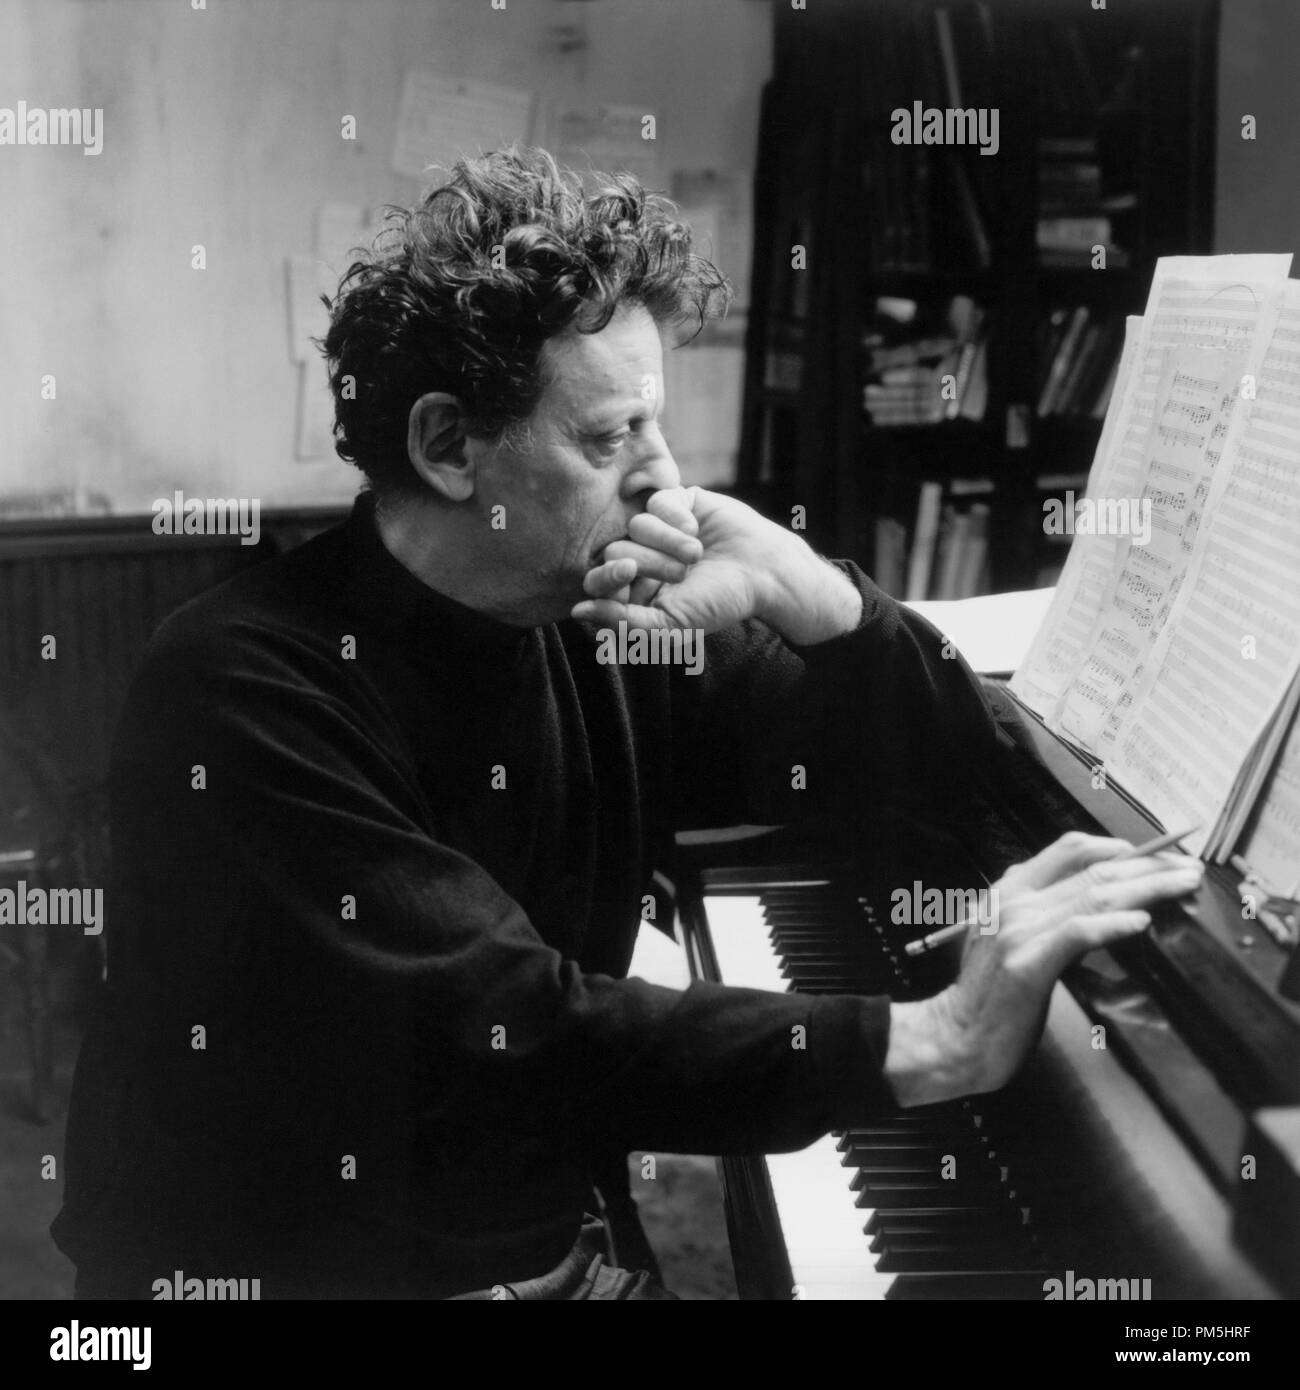 Film Still / Publicity Still from 'The Hours' Composer Phillip Glass © 2002 Paramount - Stock Image